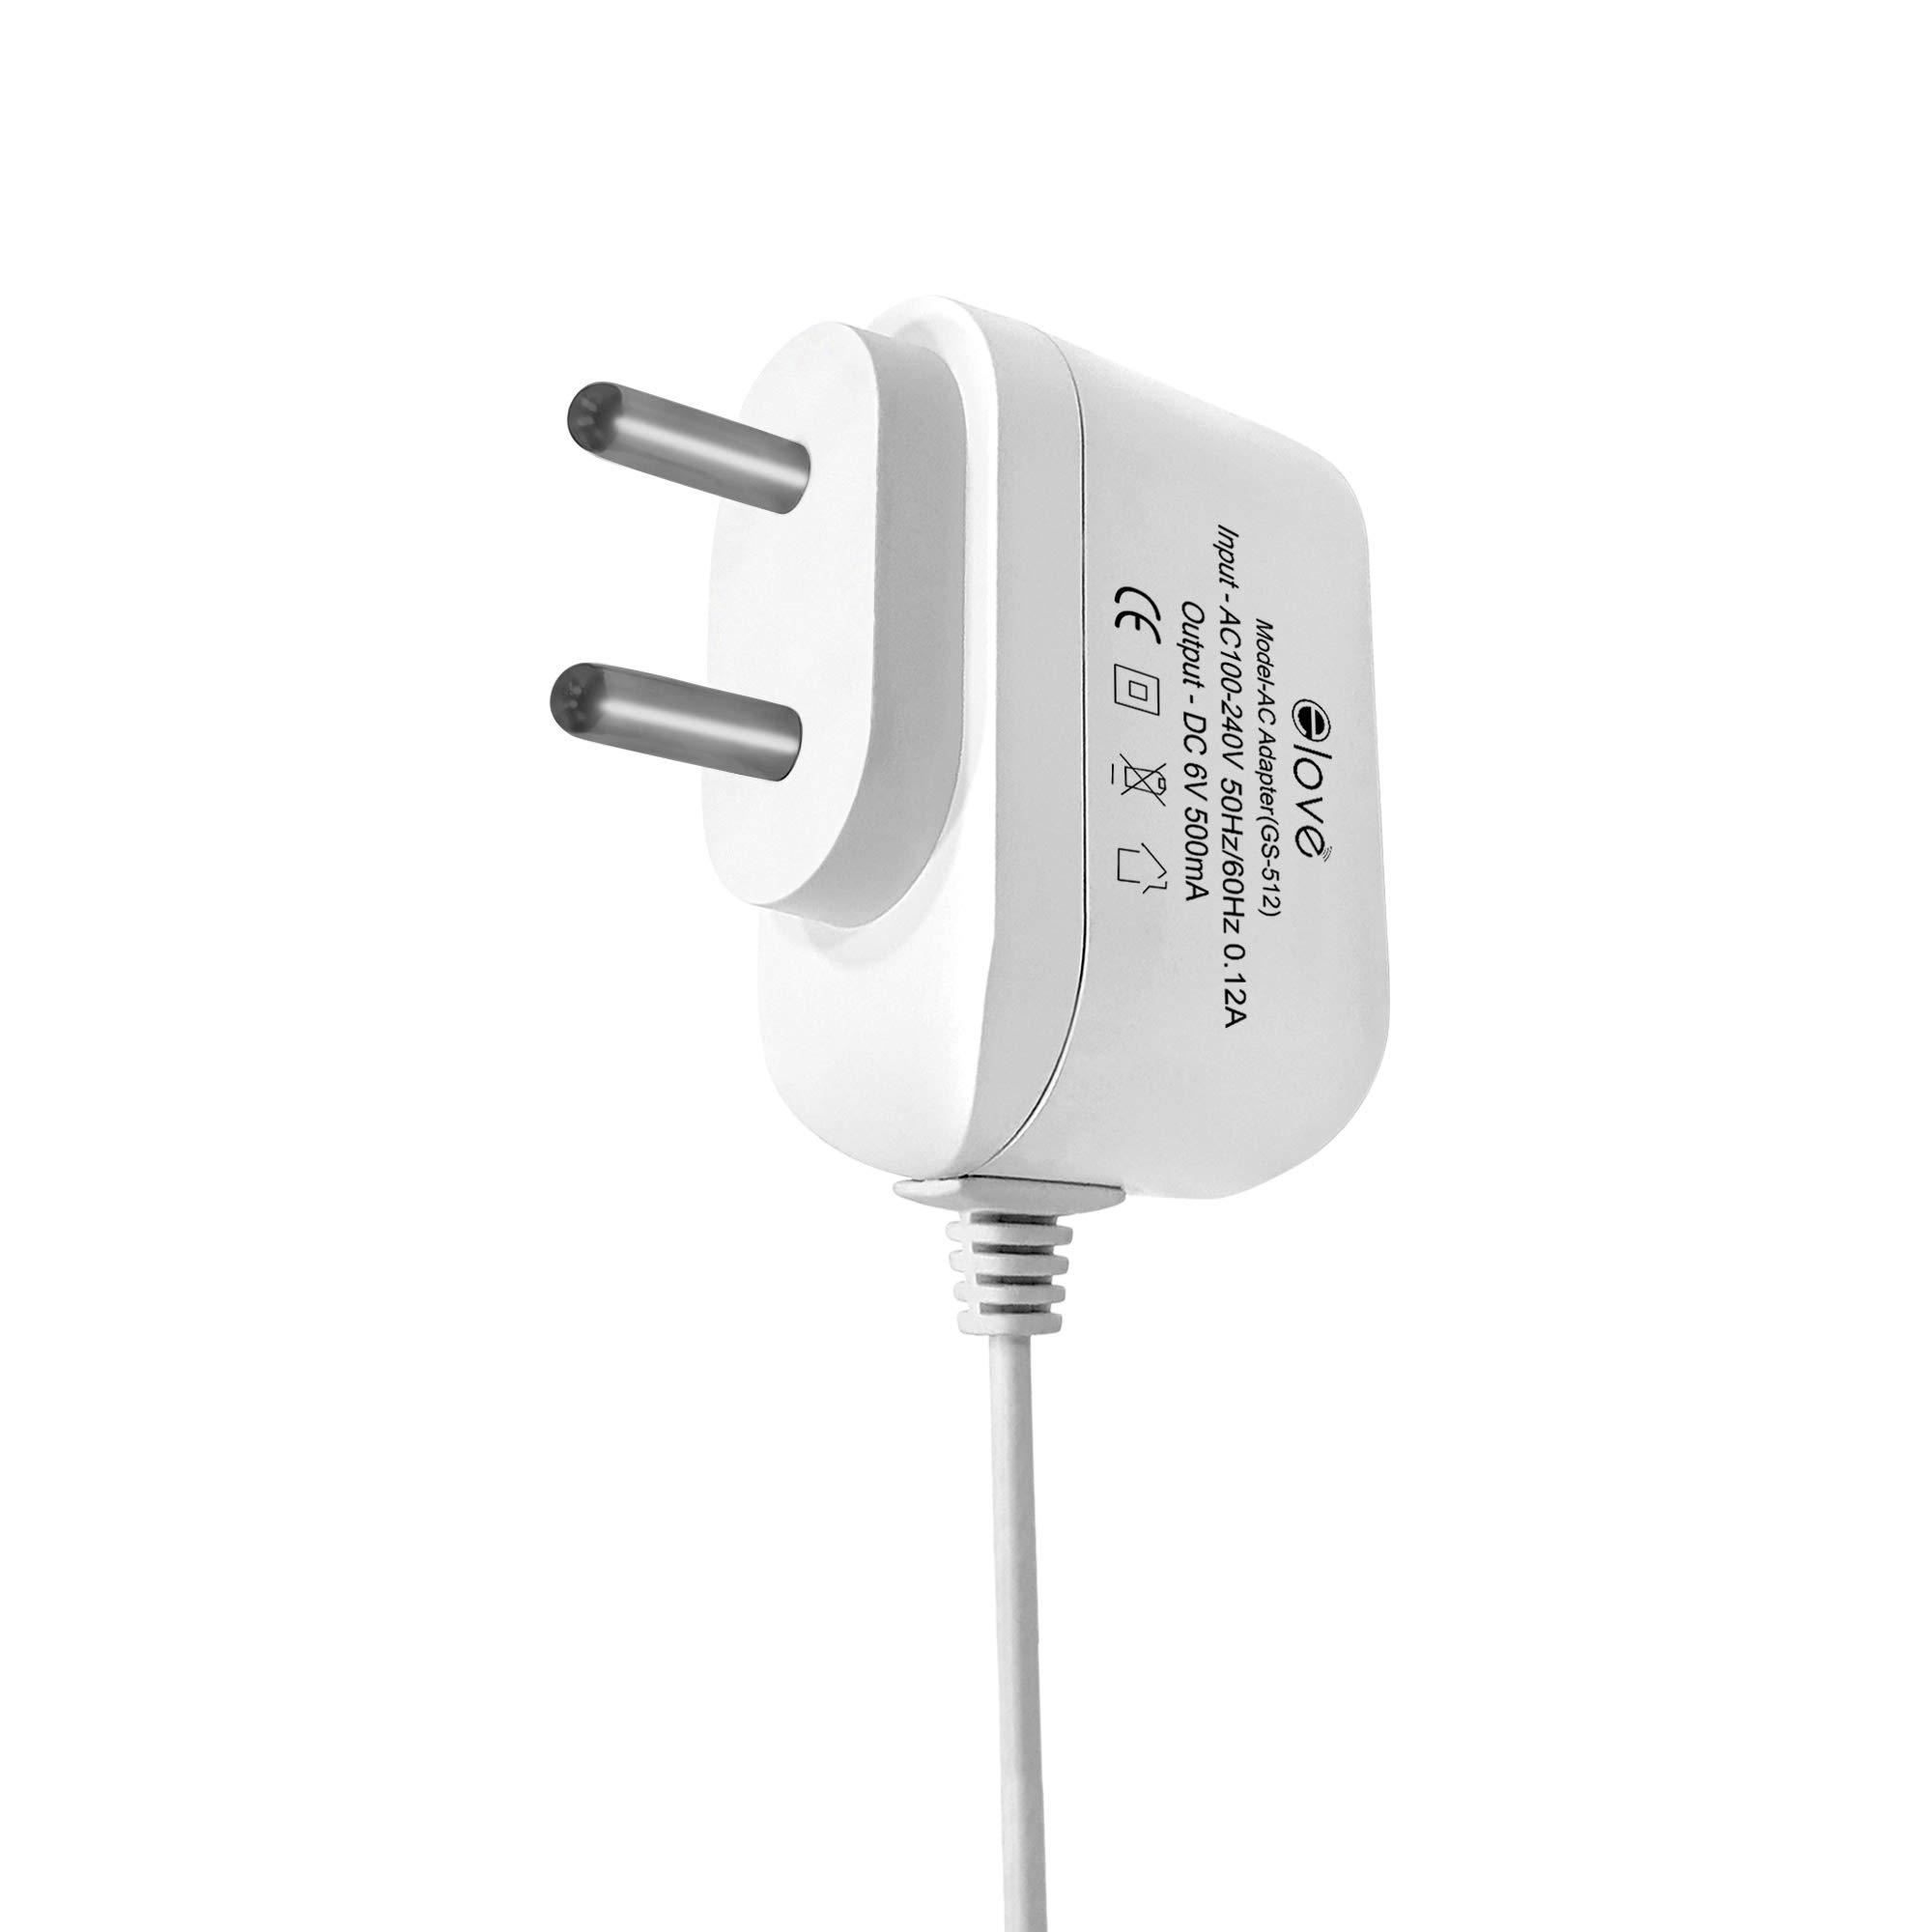 Elove 6V AC/DC Power Adapter for Omron 5, 7 Series Blood Pressure  Monitor/BP Machine Adapter with 10 Feet Extended Cord - White